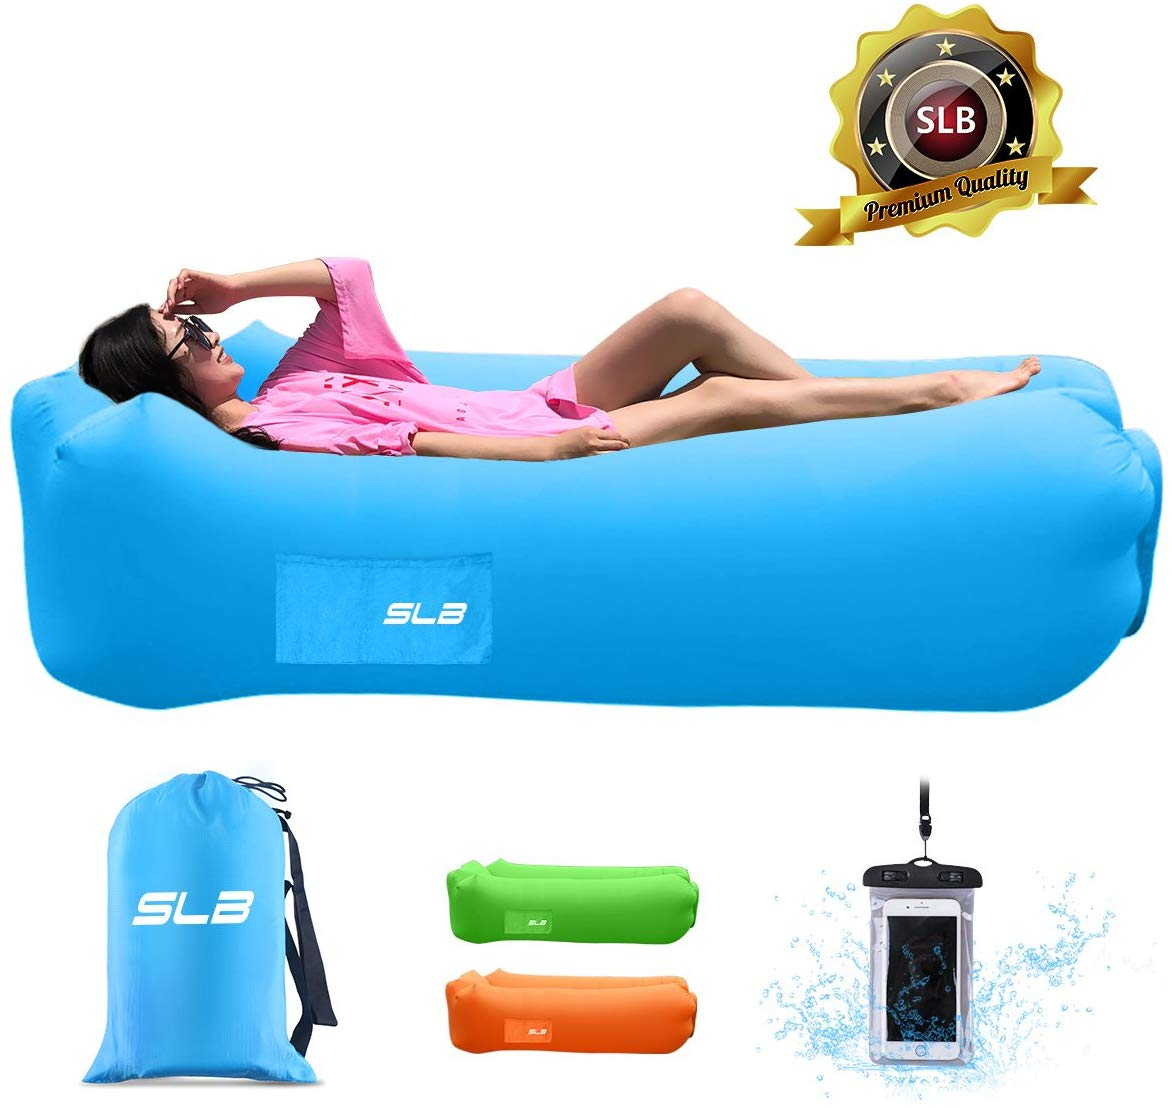 Lazy Lounger Inflatable Air Bed